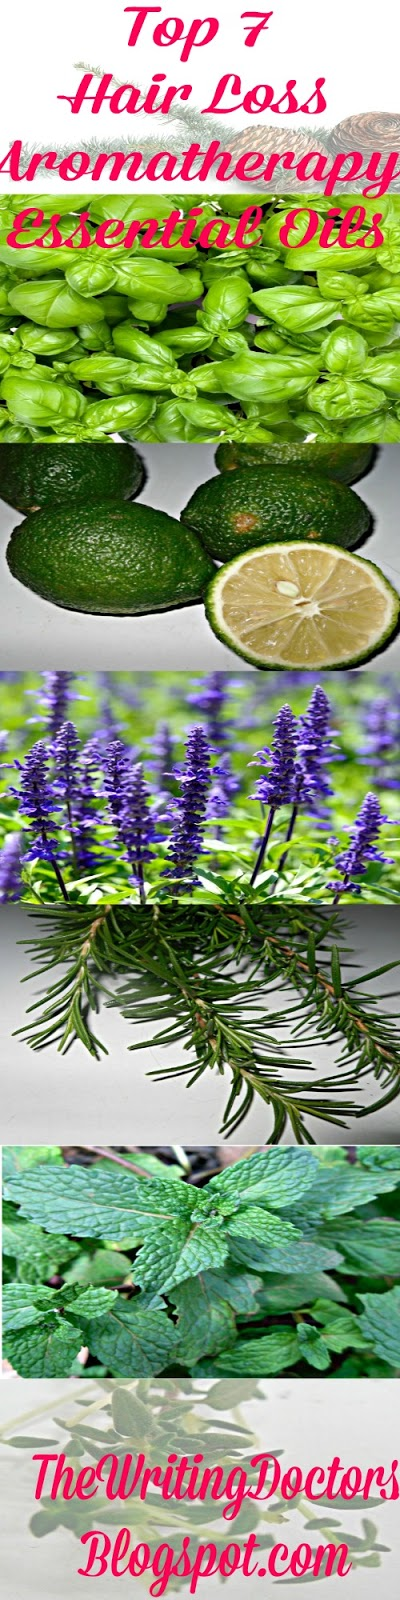 Top 7 Aromatherapy Essential Oils for Hair Loss